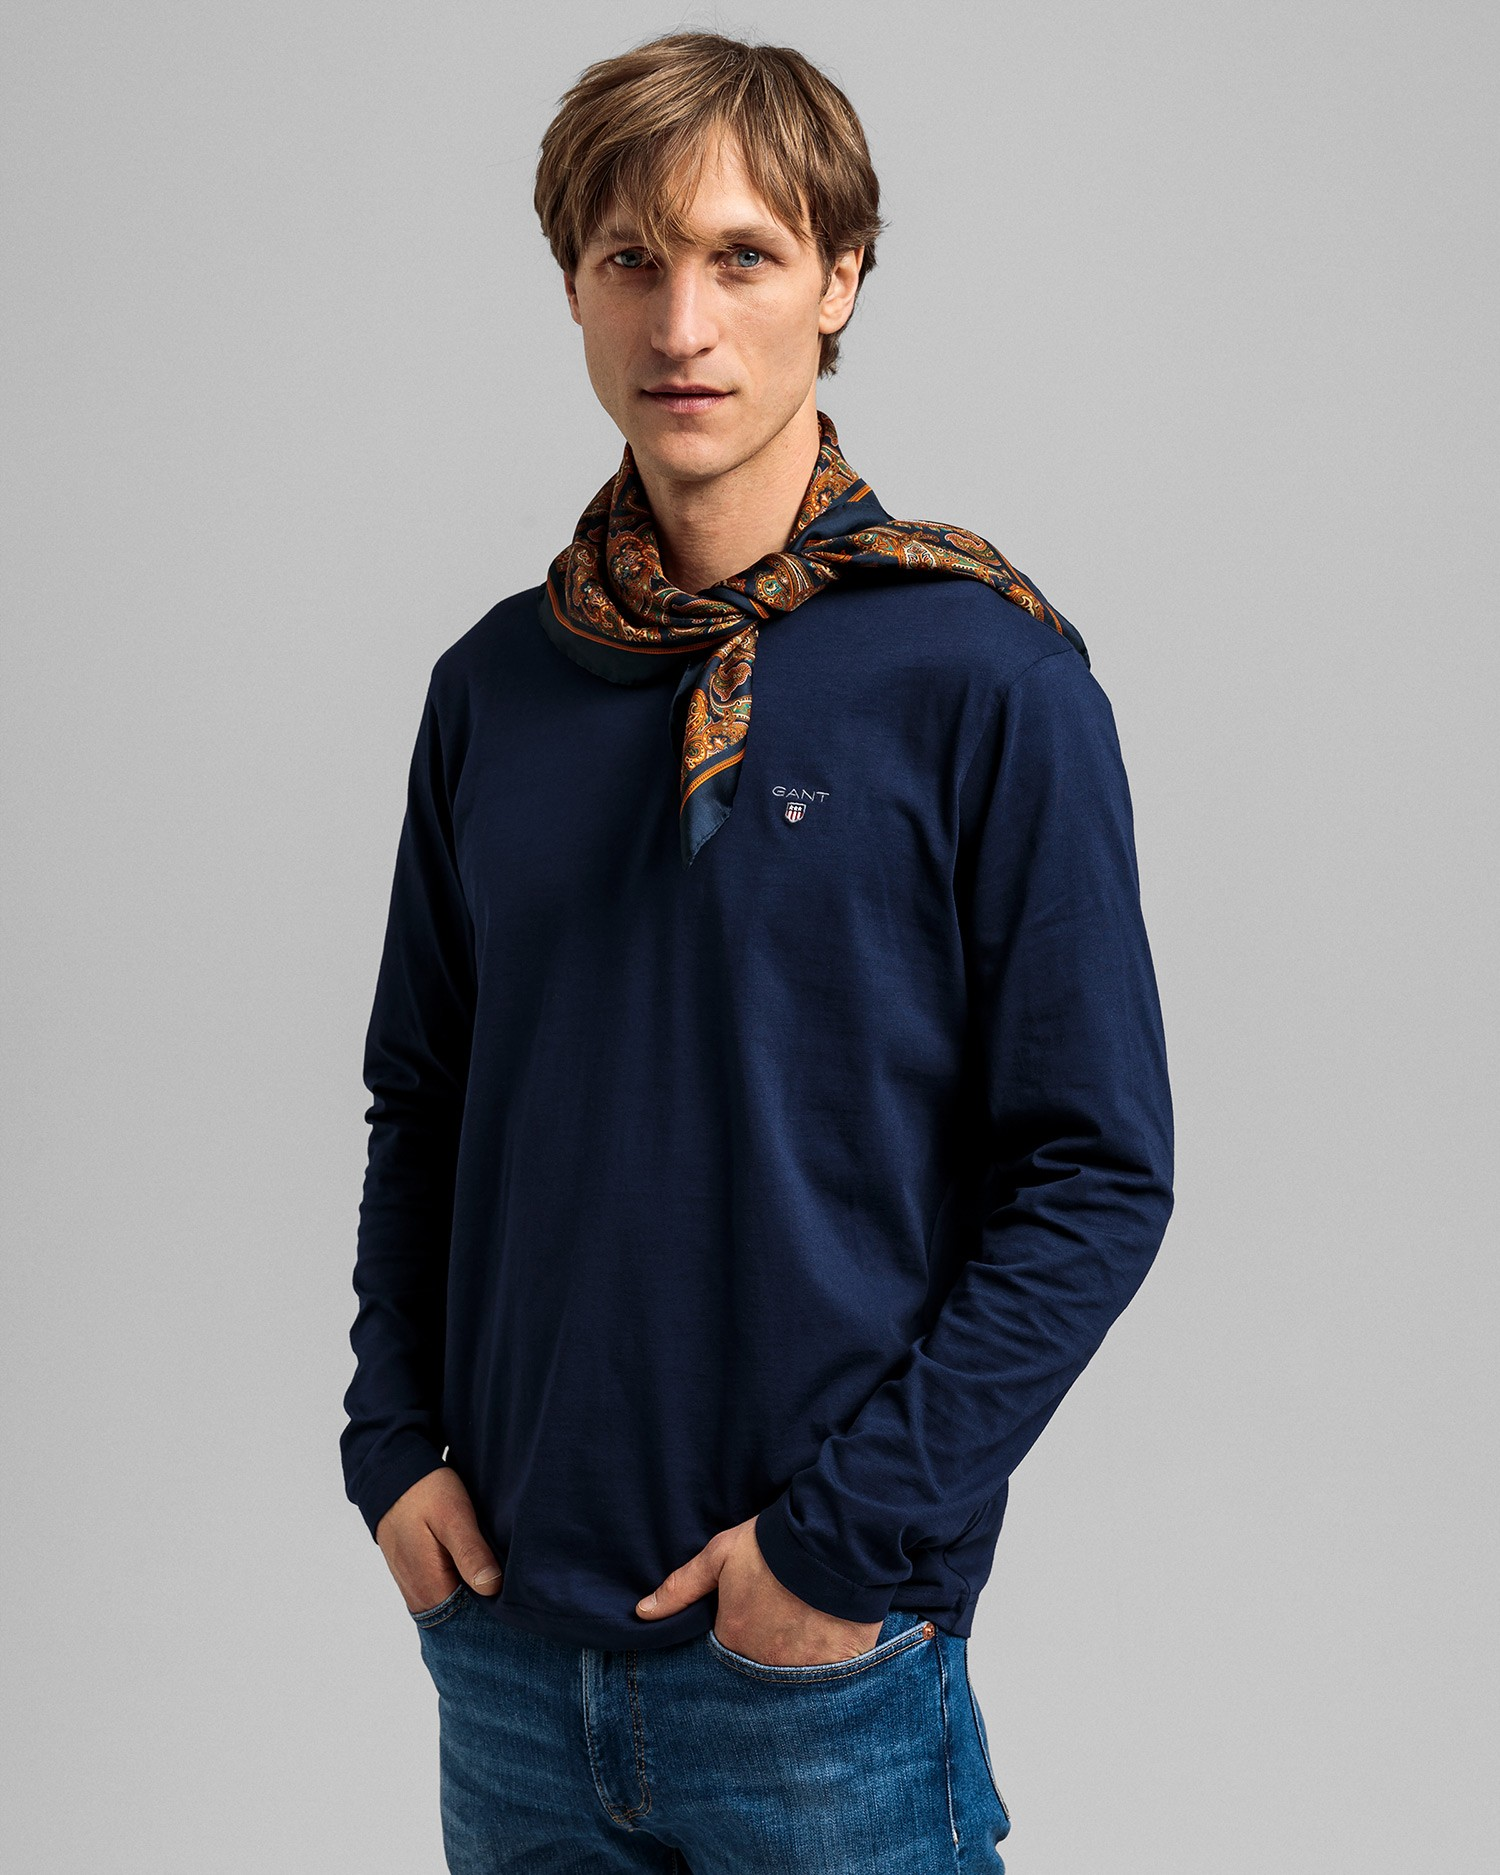 GANT Men's The Original Long Sleeve T-Shirt - 234502